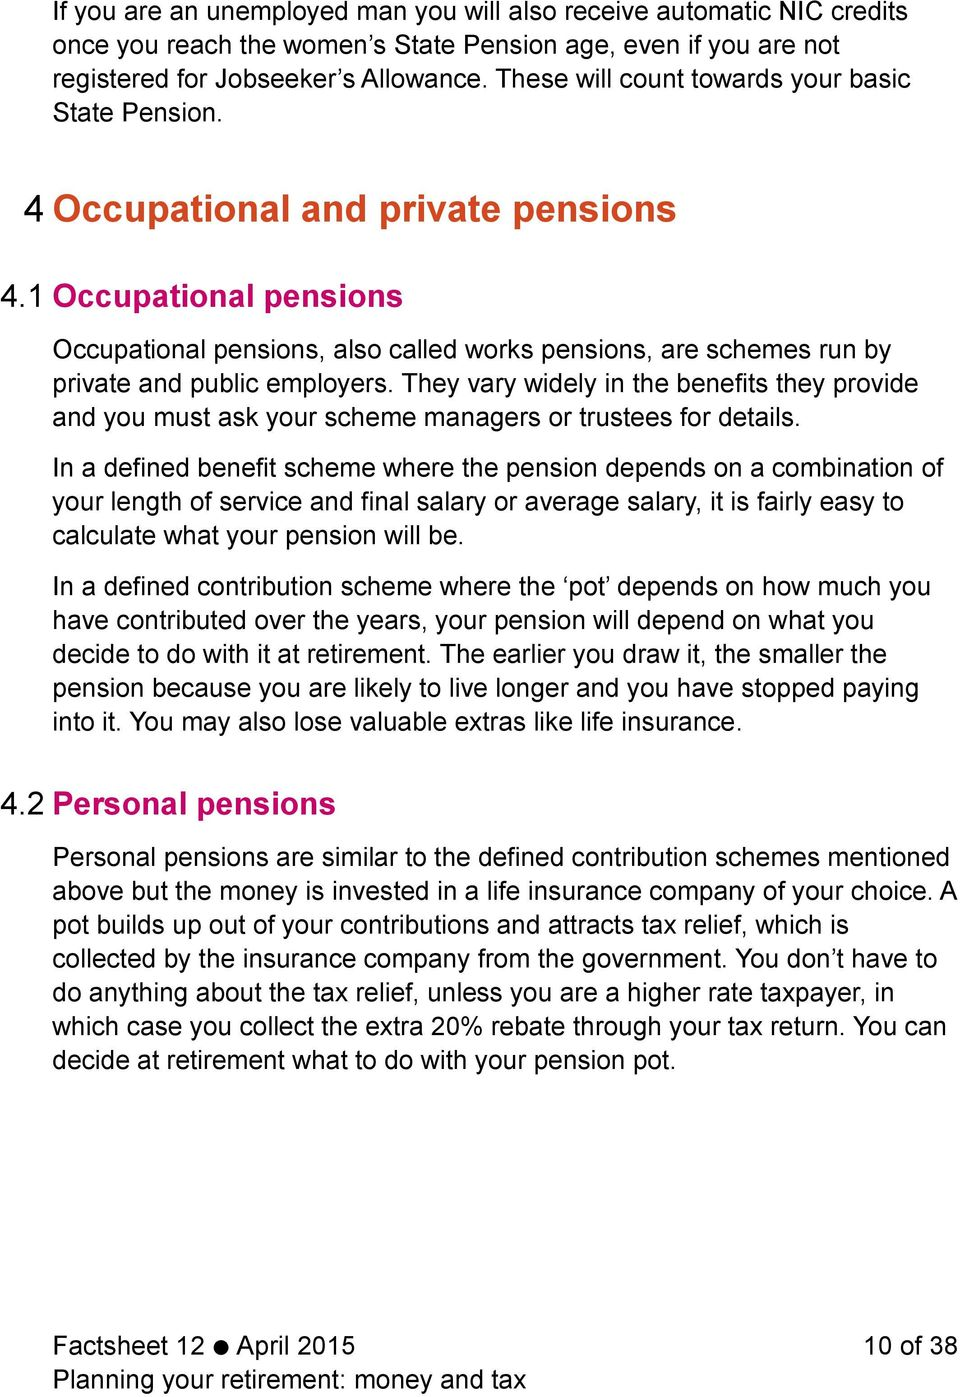 1 Occupational pensions Occupational pensions, also called works pensions, are schemes run by private and public employers.